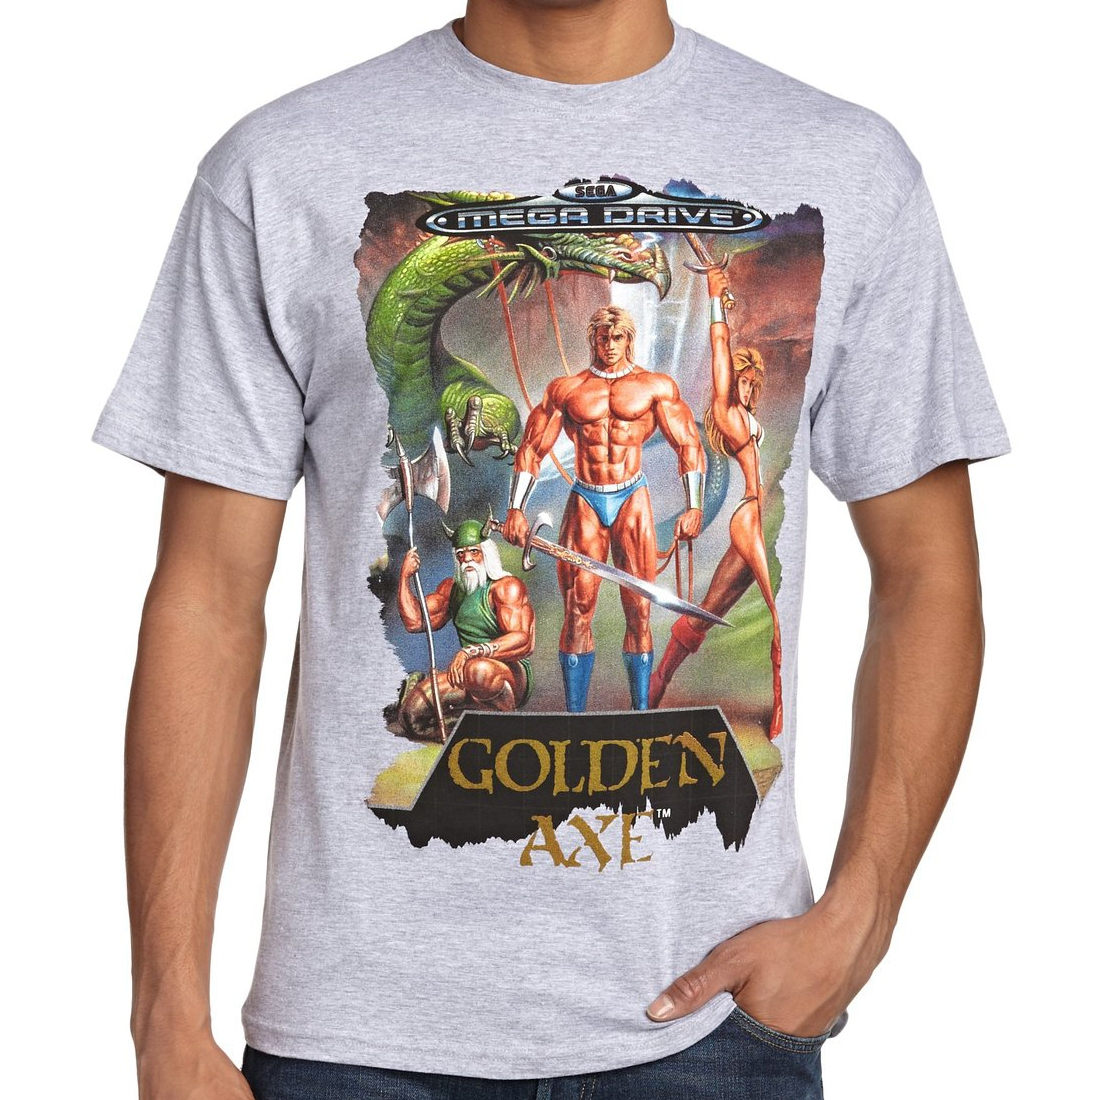 Golden Axe T-Shirt